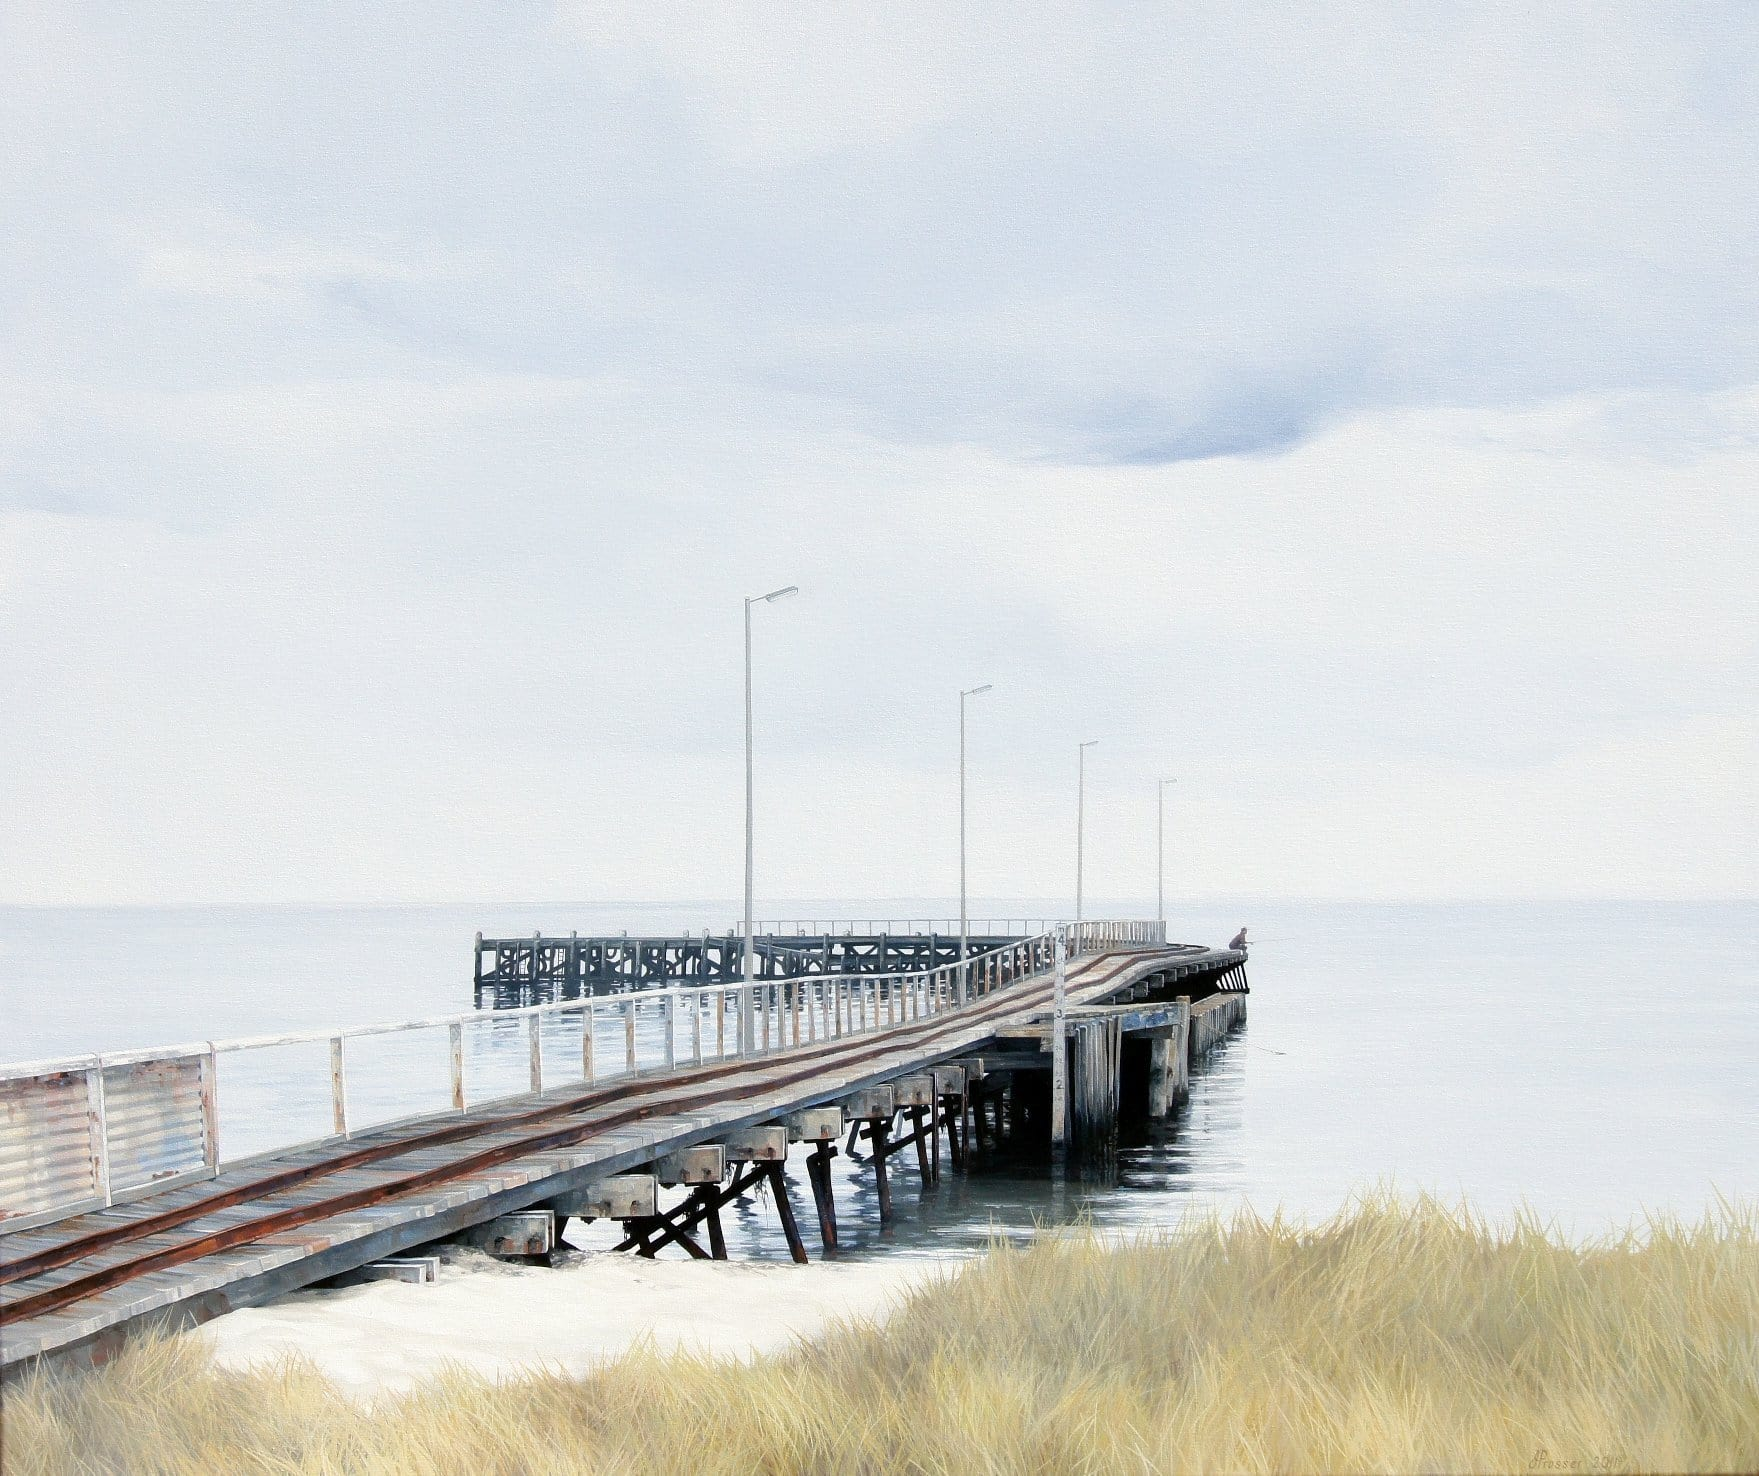 Beach canvas Art - Beach Jetty - JAIME PROSSER ART - JAIME PROSSER ART